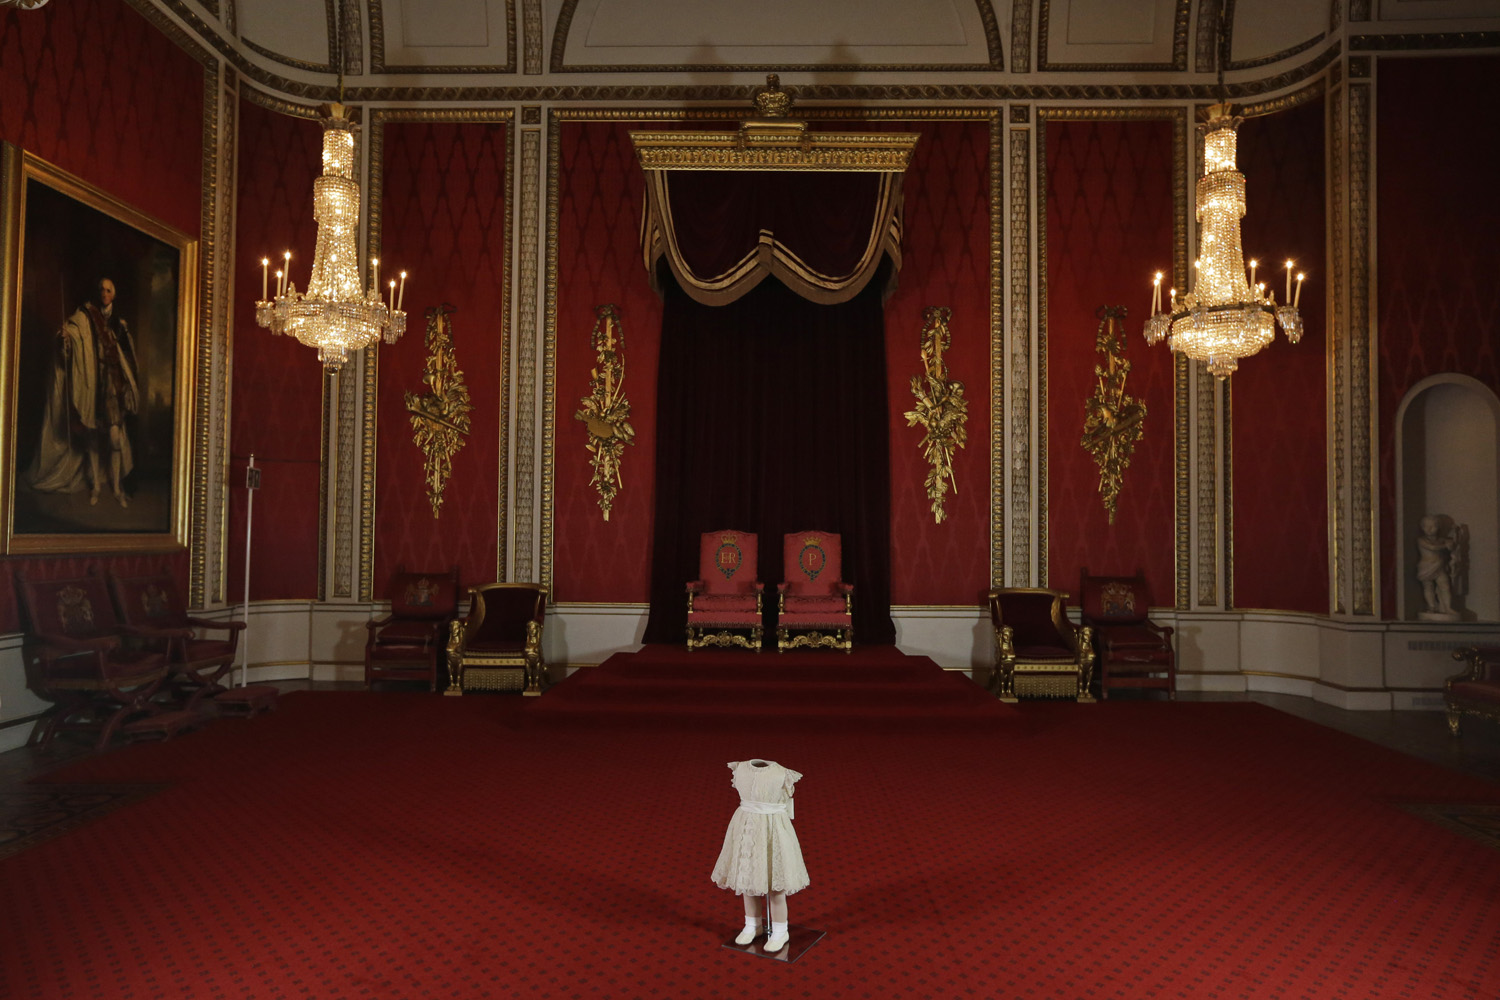 Jan. 24, 2013. The outfit worn by the two-year-old Princess Anne at Britain's Queen Elizabeth II's Coronation on June 2, 1953, is seen during a photo opportunity at the Throne Room of Buckingham Palace in central London.